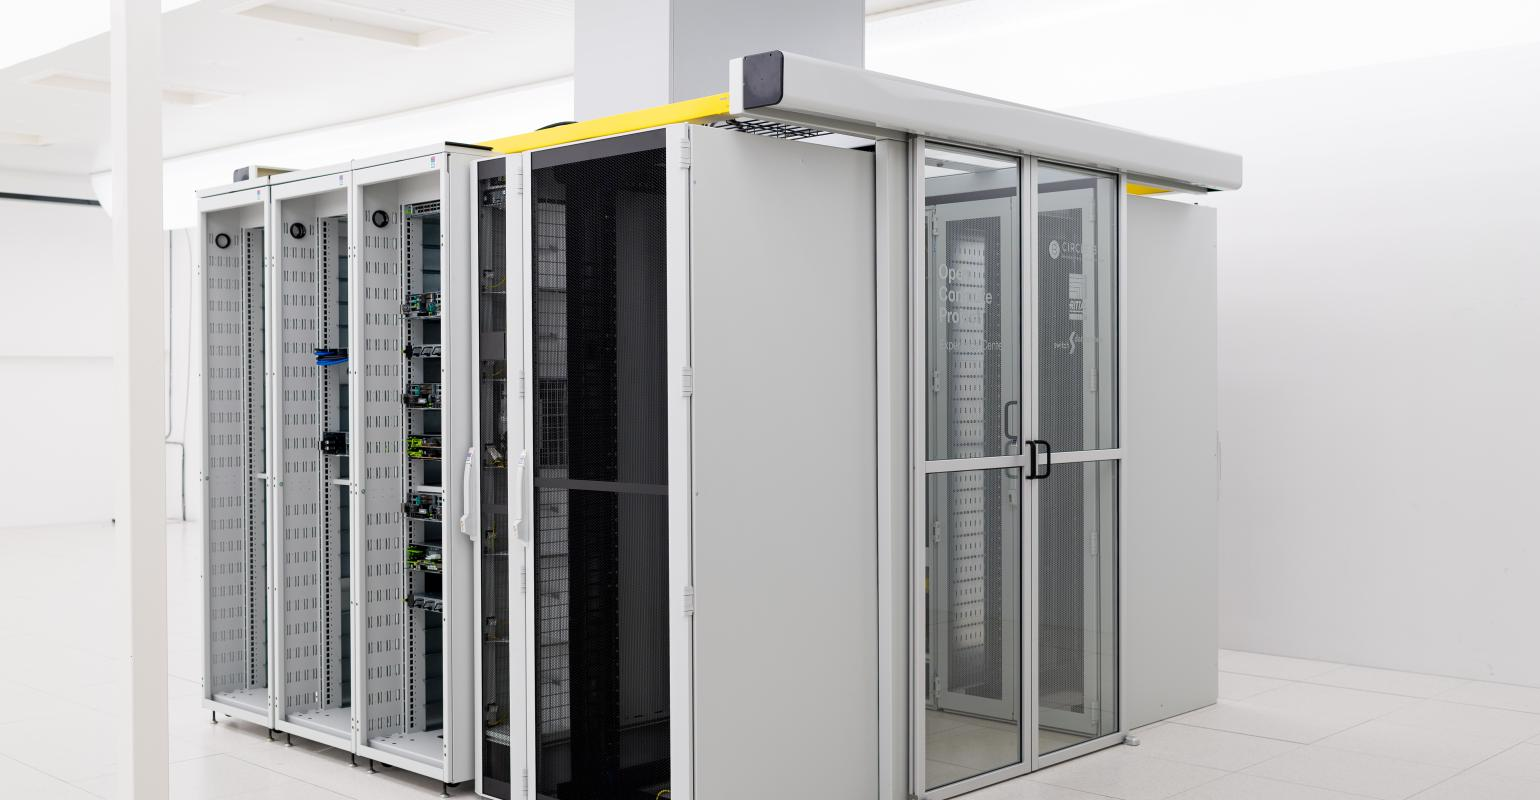 Growth of OCP Data Center Gear Sales Outpaces Expectations | Data